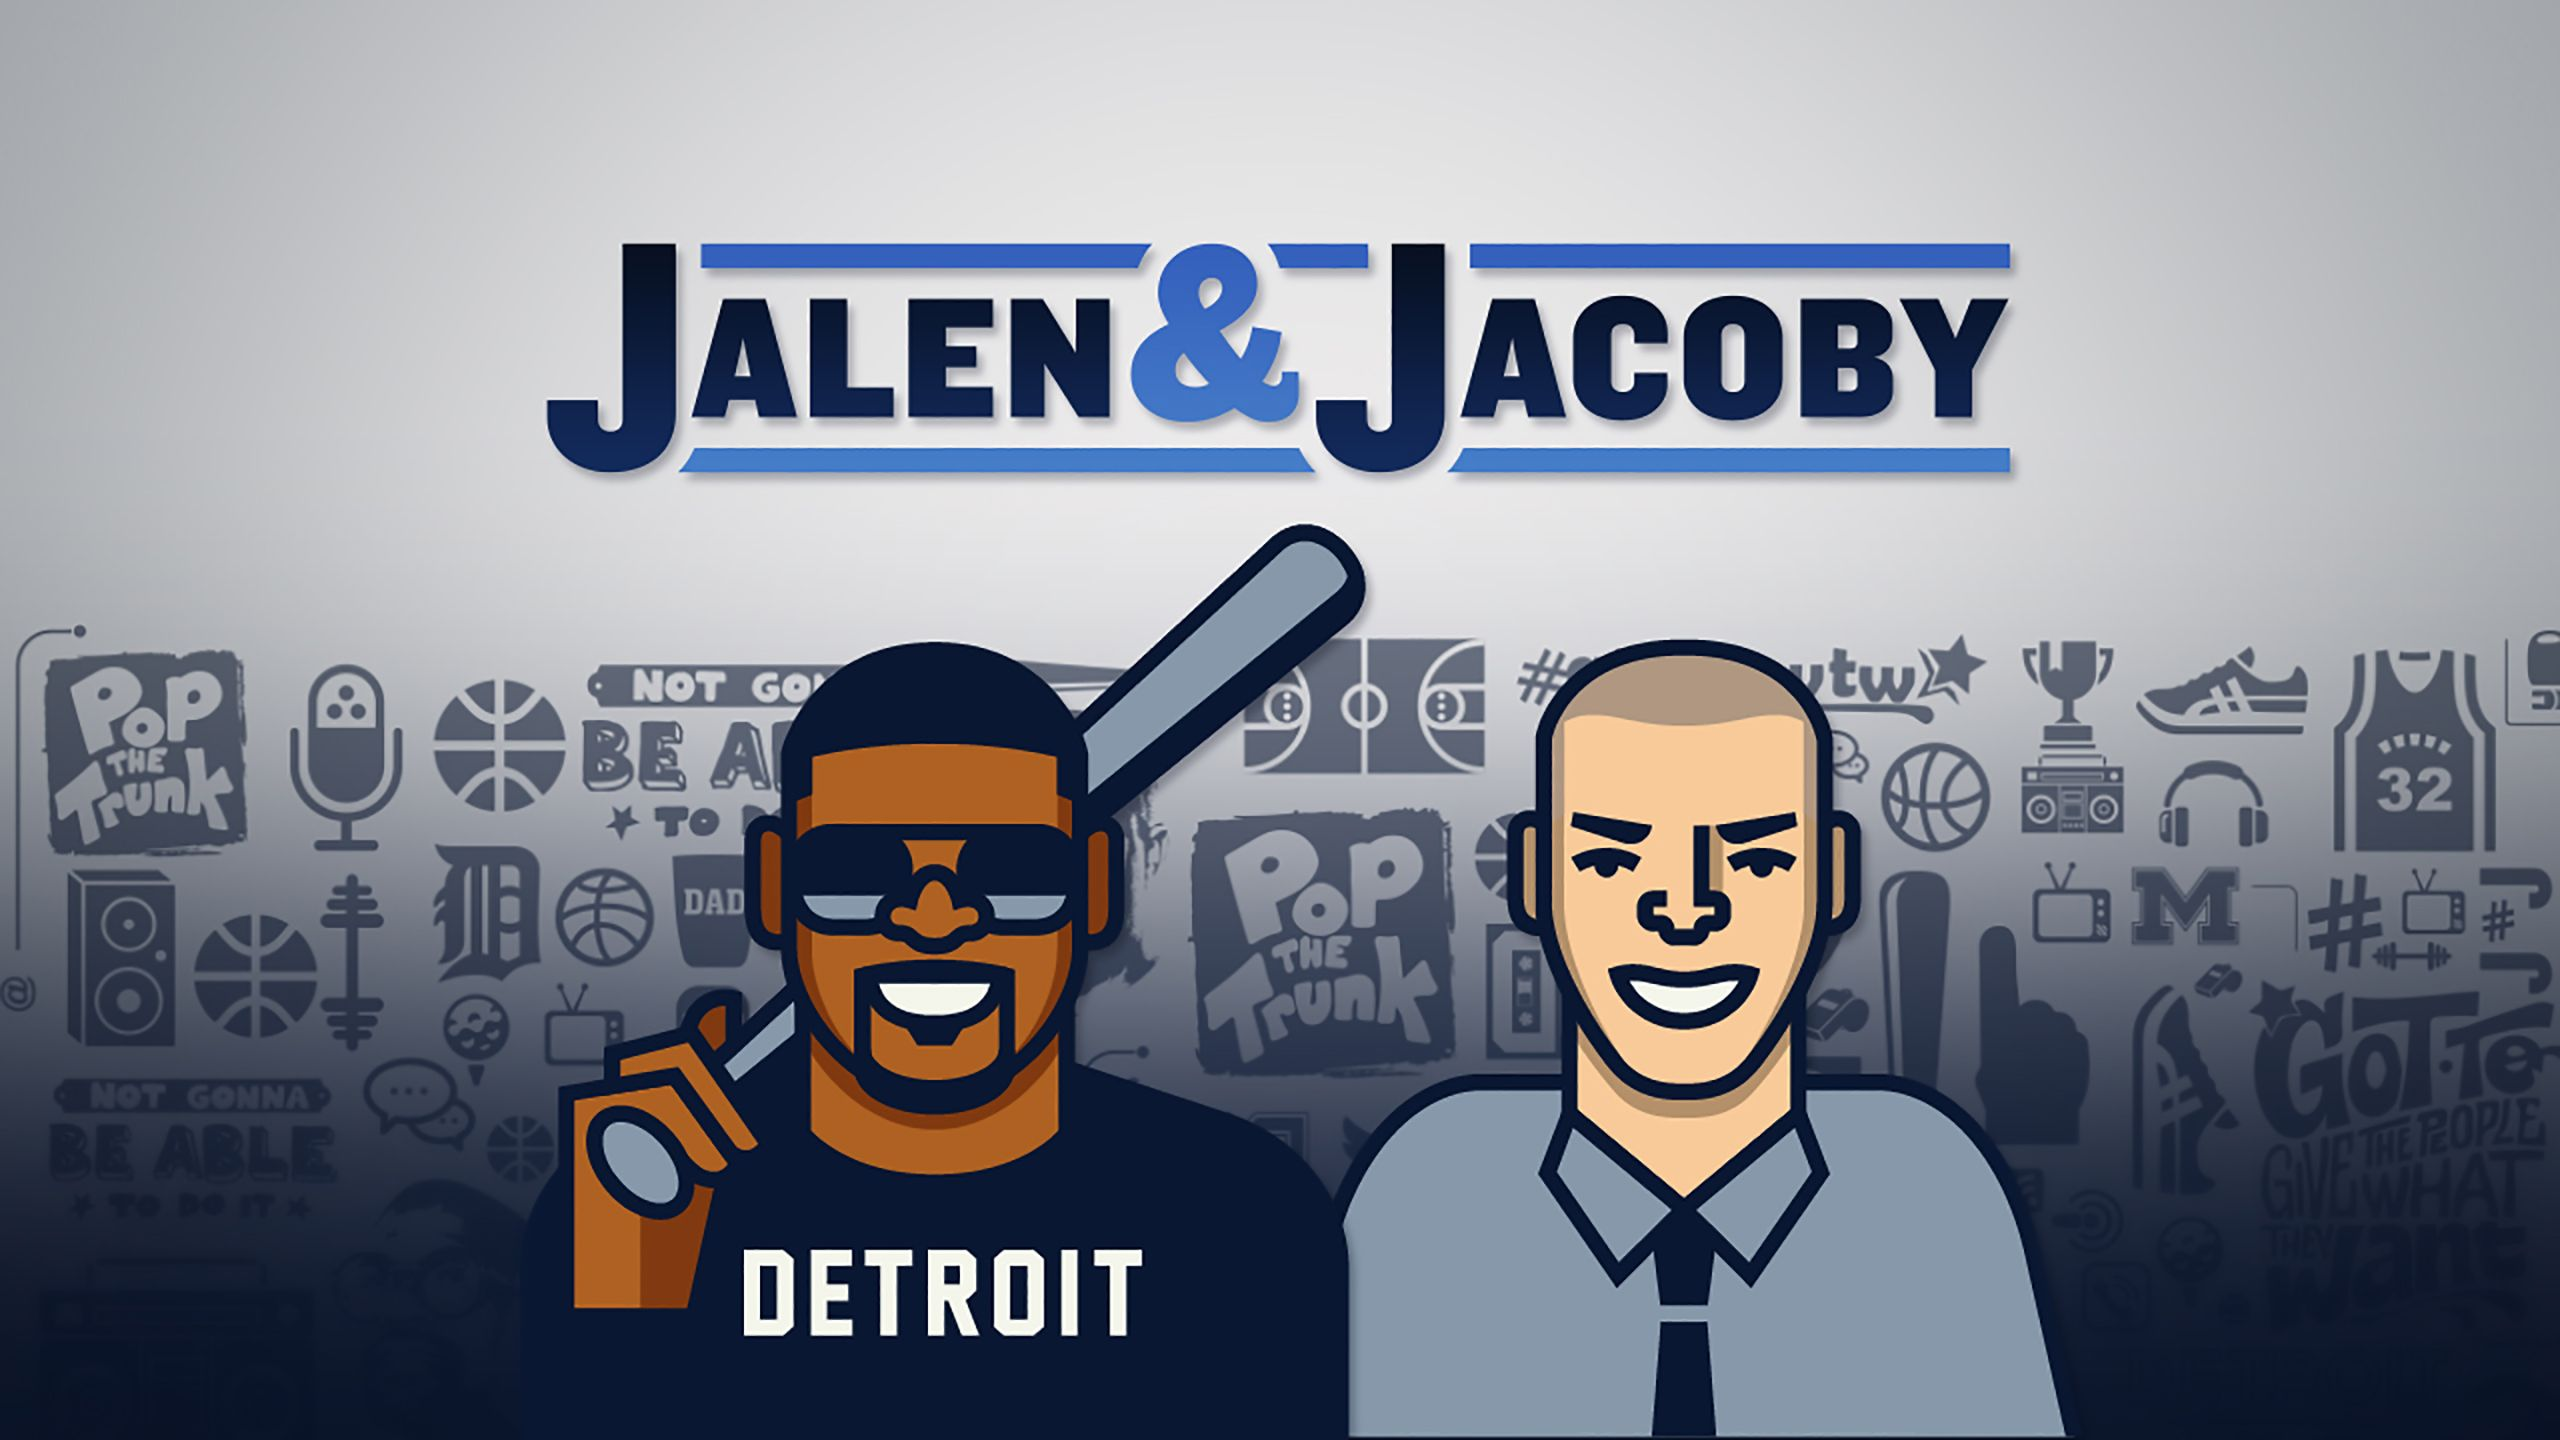 Wed, 3/14 - Jalen & Jacoby